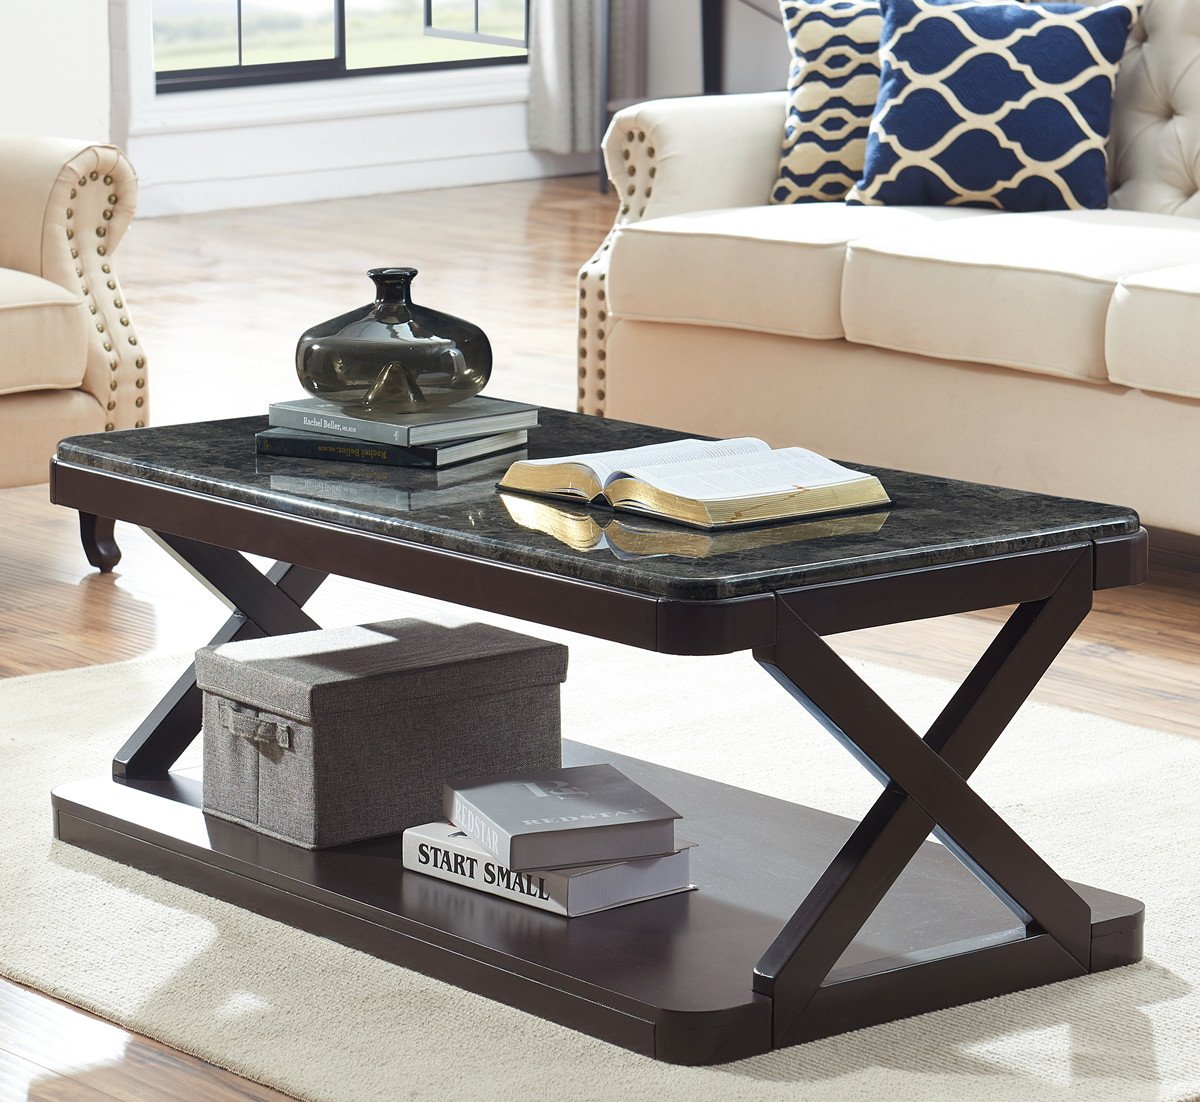 Amazon com ok furniture coffee table with faux marble top modern cocktail table with solid wood x legs for living room marble dark grey1 pcs kitchen